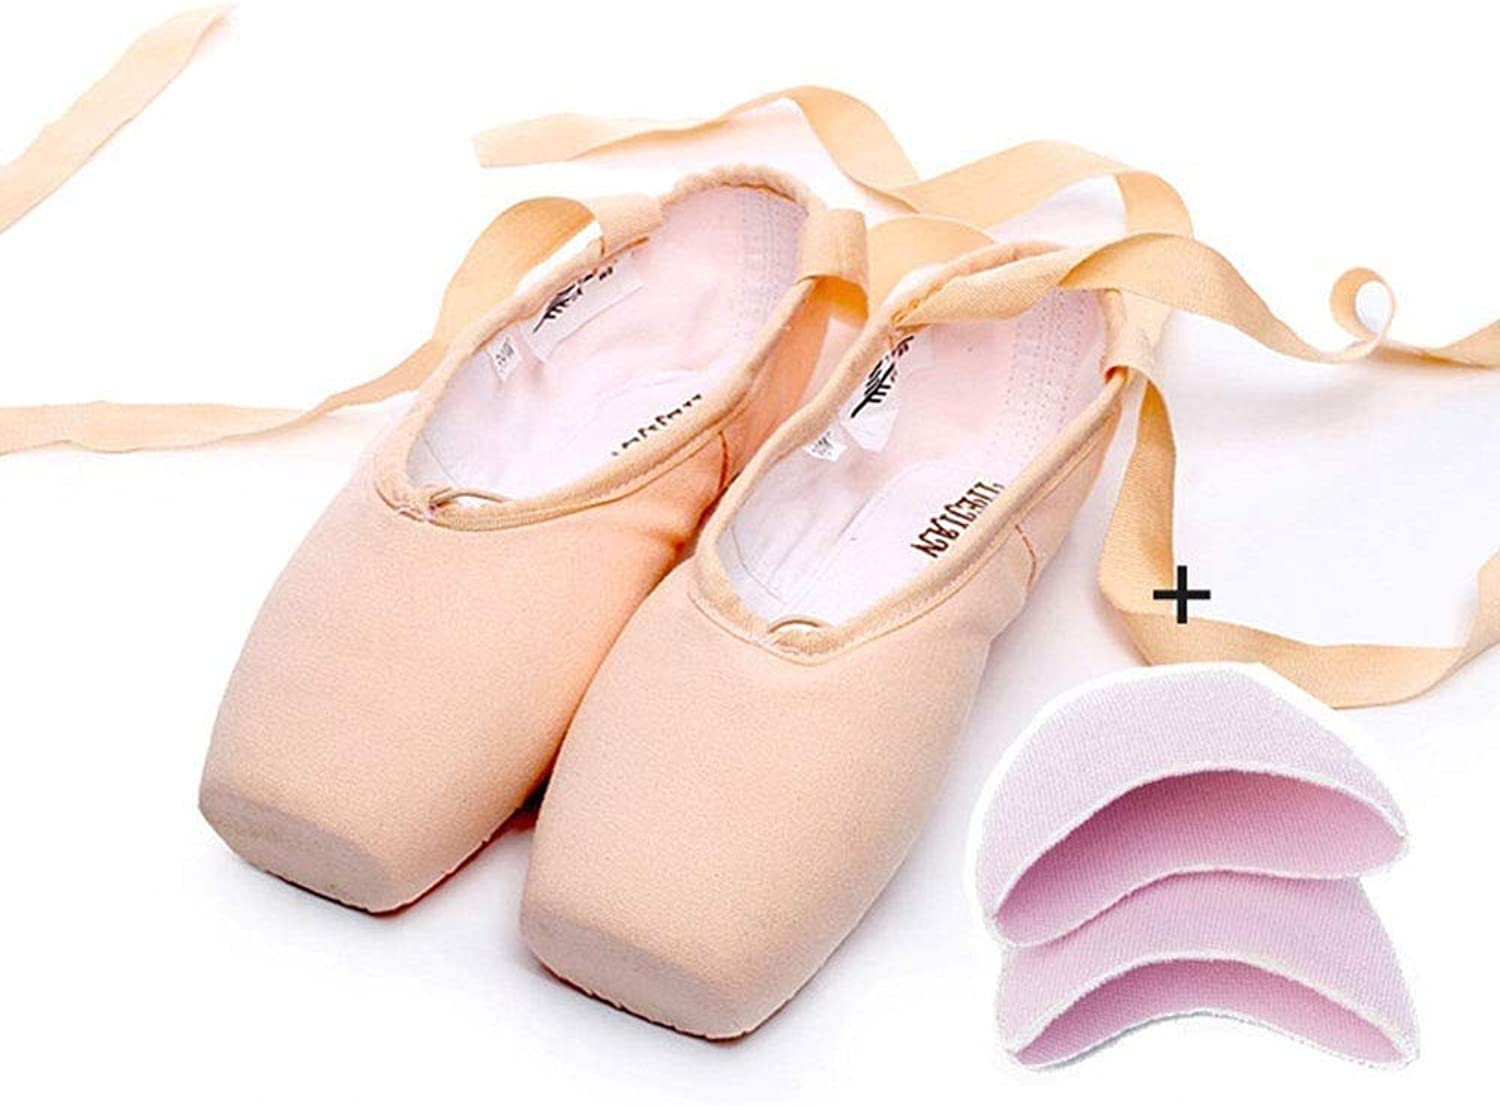 Ruanyi Profession Pink Ballet shoes, Pointe Straps Exercise Satin Canvas Silicone Sponge for Girls Women (color   Canvas+Sponge, Size   37 EU)